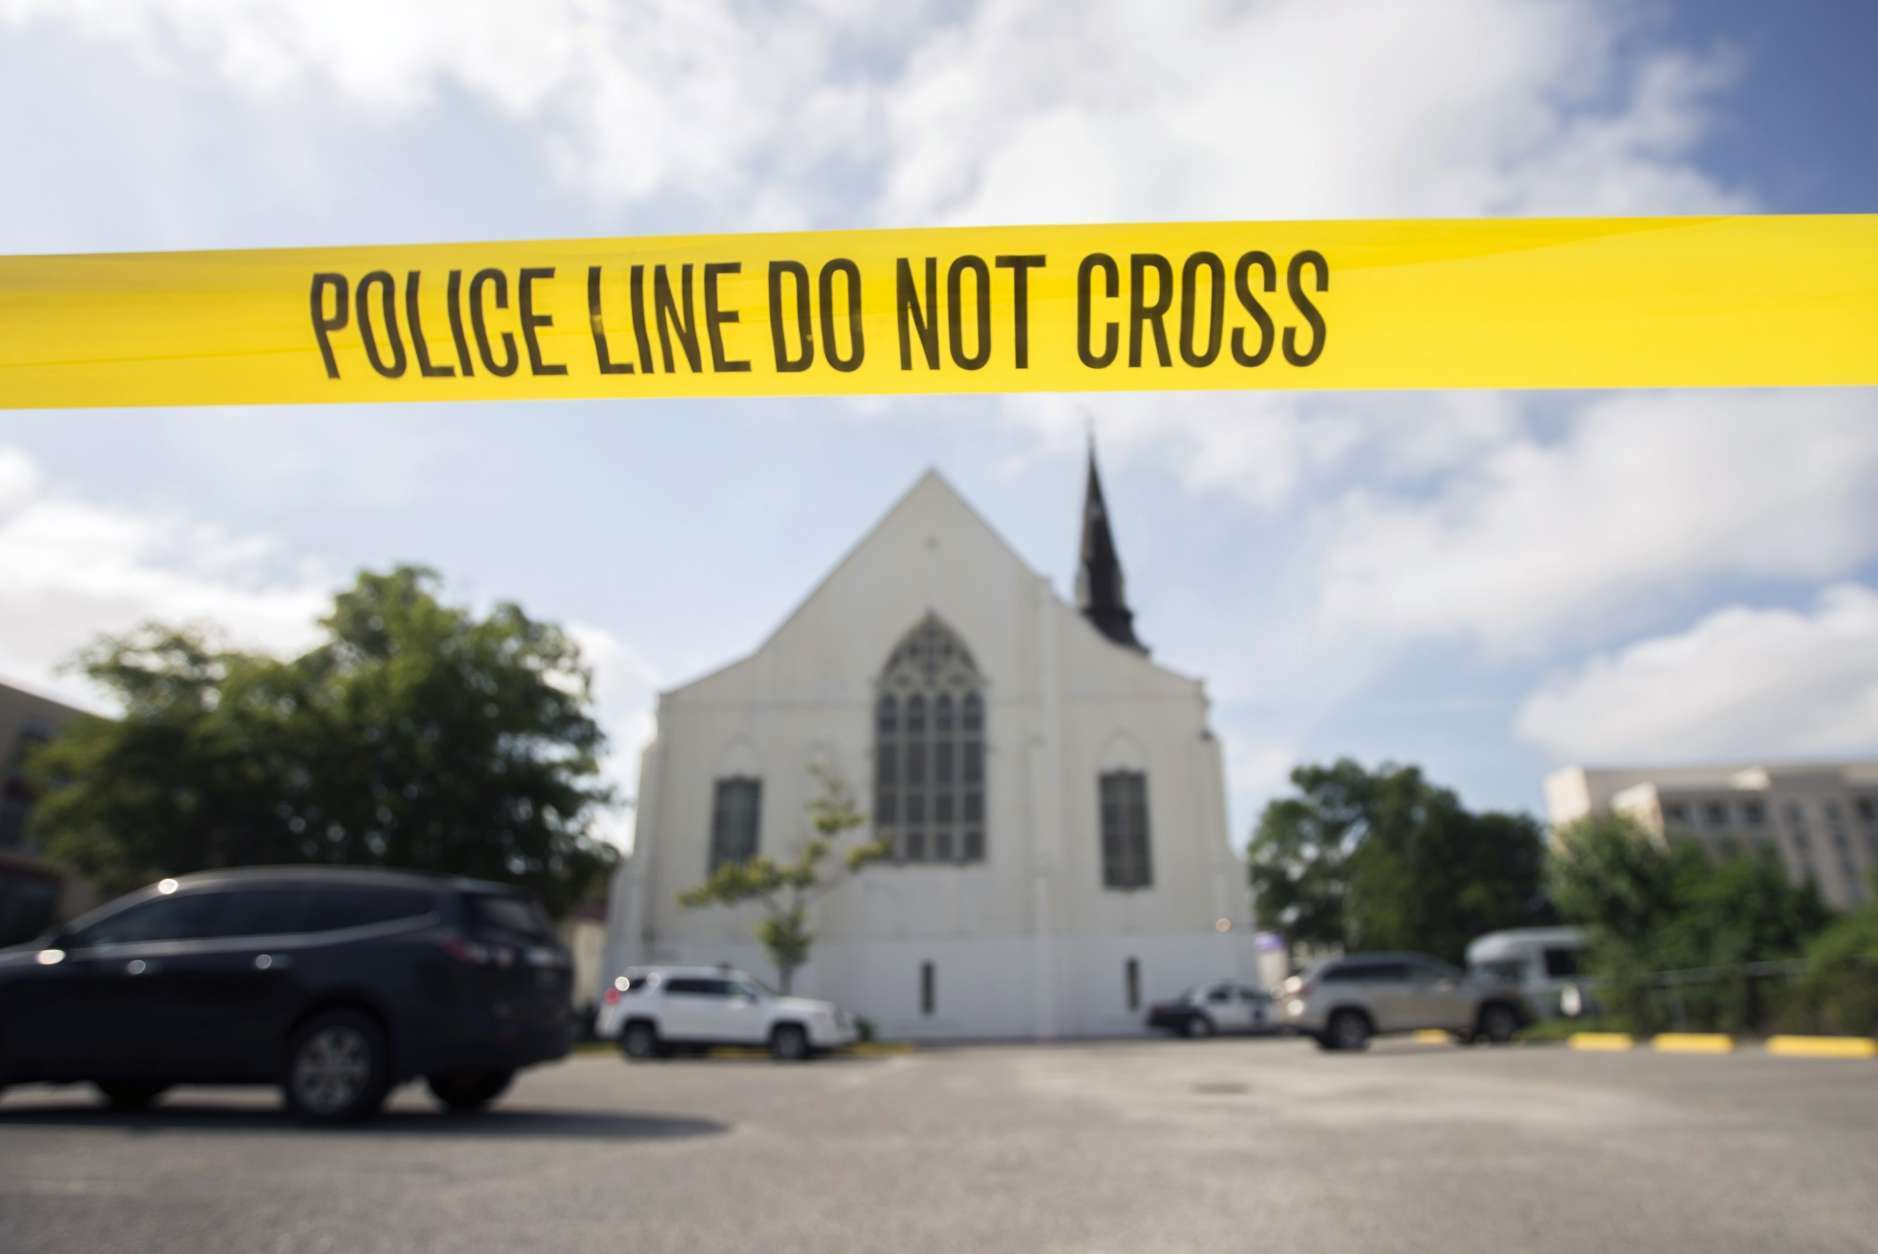 In 2015, nine people were shot to death in a historic African-American church in Charleston, South Carolina; suspect Dylann Roof was arrested the following morning. (Roof has since been convicted of federal hate crimes and sentenced to death; he later pleaded guilty to state murder charges and was sentenced to life in prison without parole.) (AP Photo/Stephen B. Morton, File)